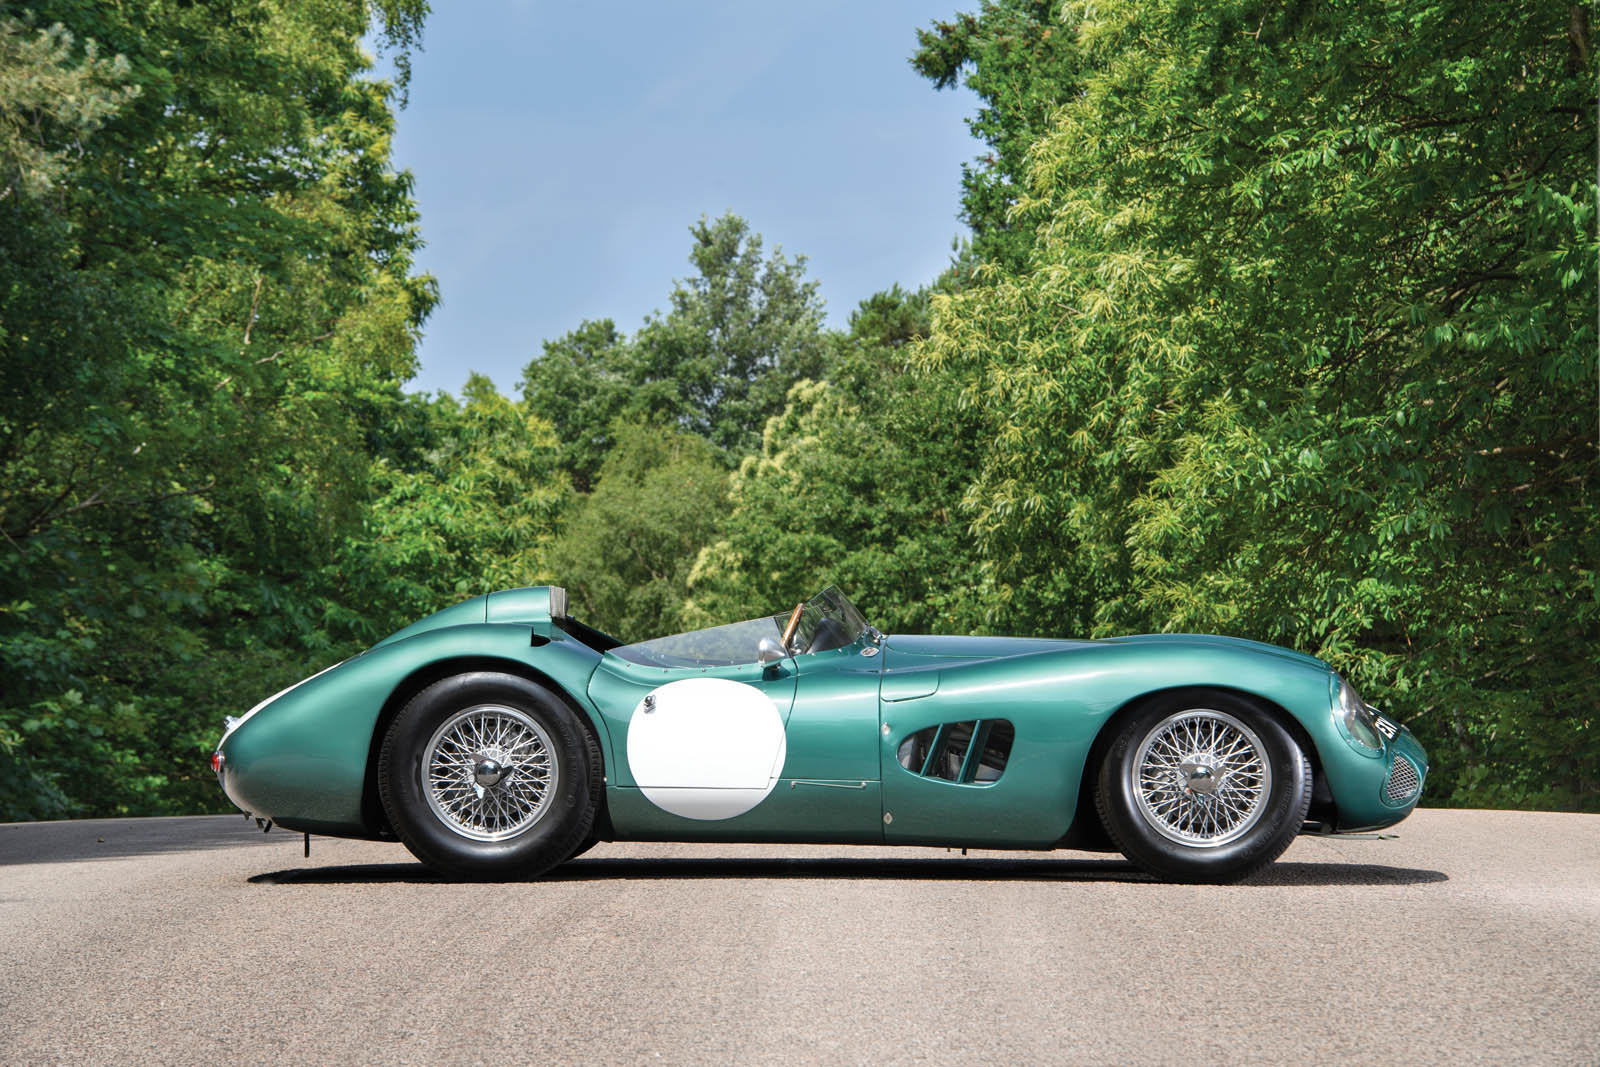 aston martin dbr1 sells for record 25 5 million in monterey. Black Bedroom Furniture Sets. Home Design Ideas